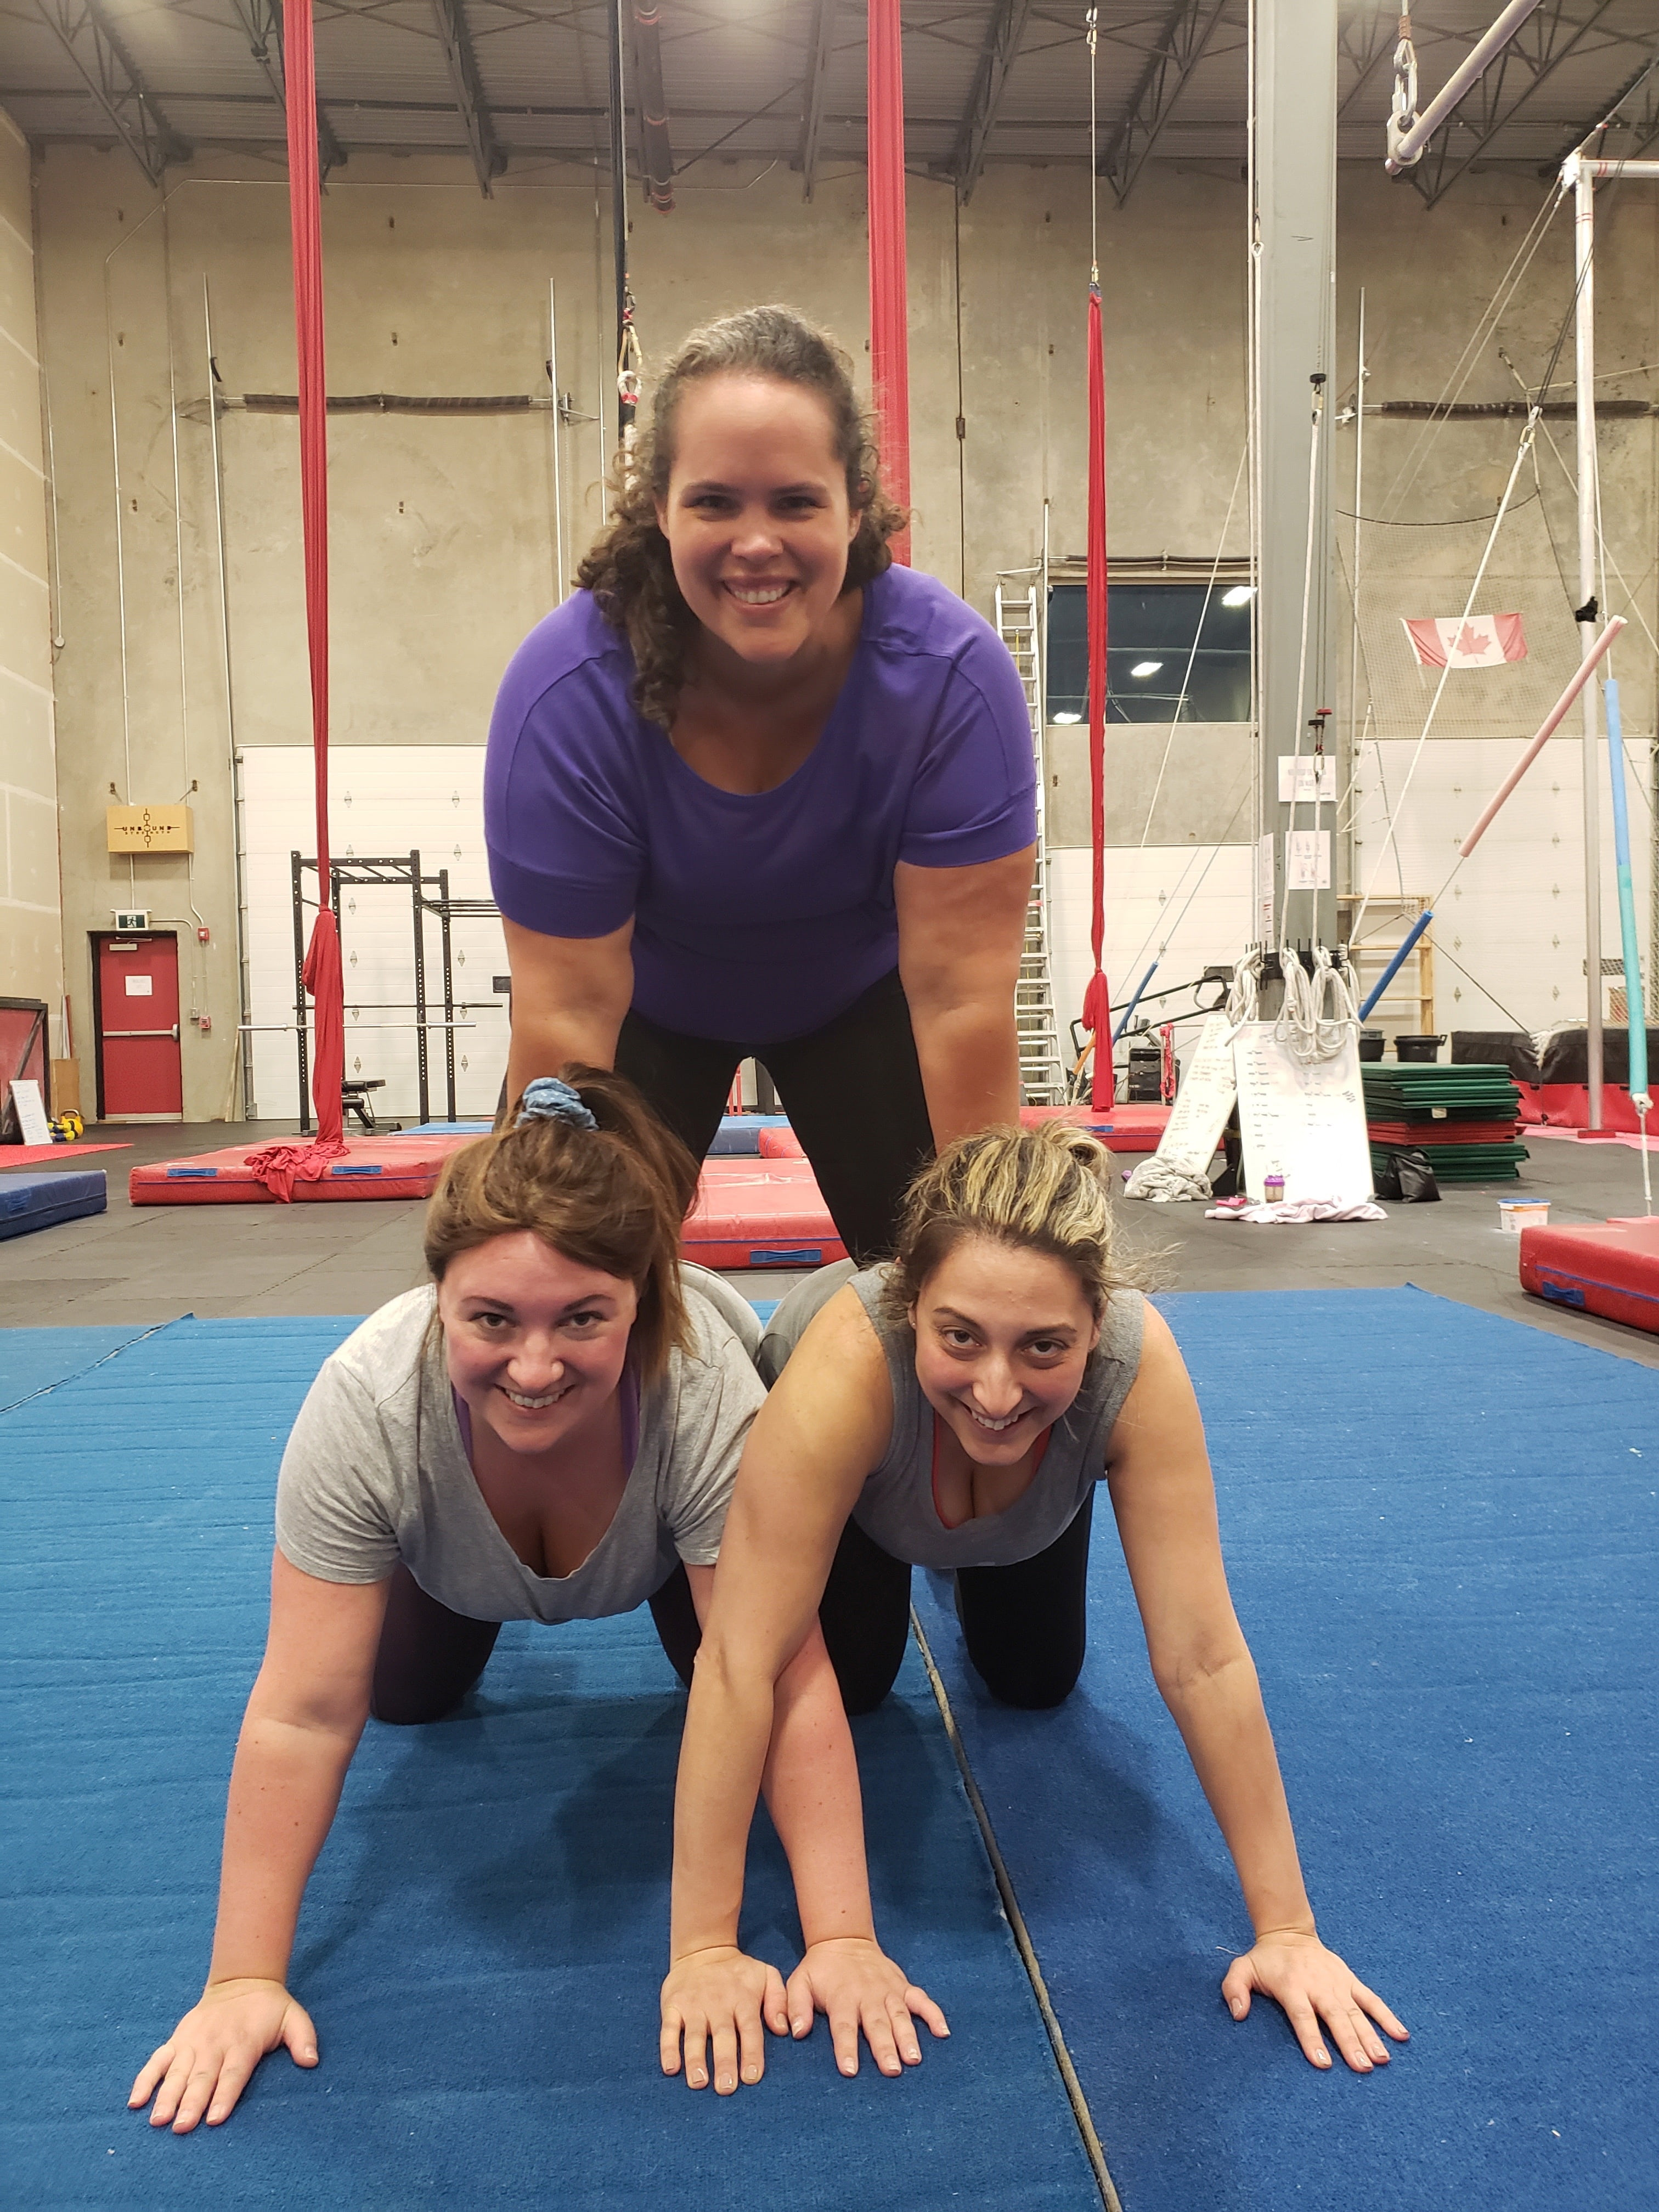 Three Women Pyramid at Circus Gym